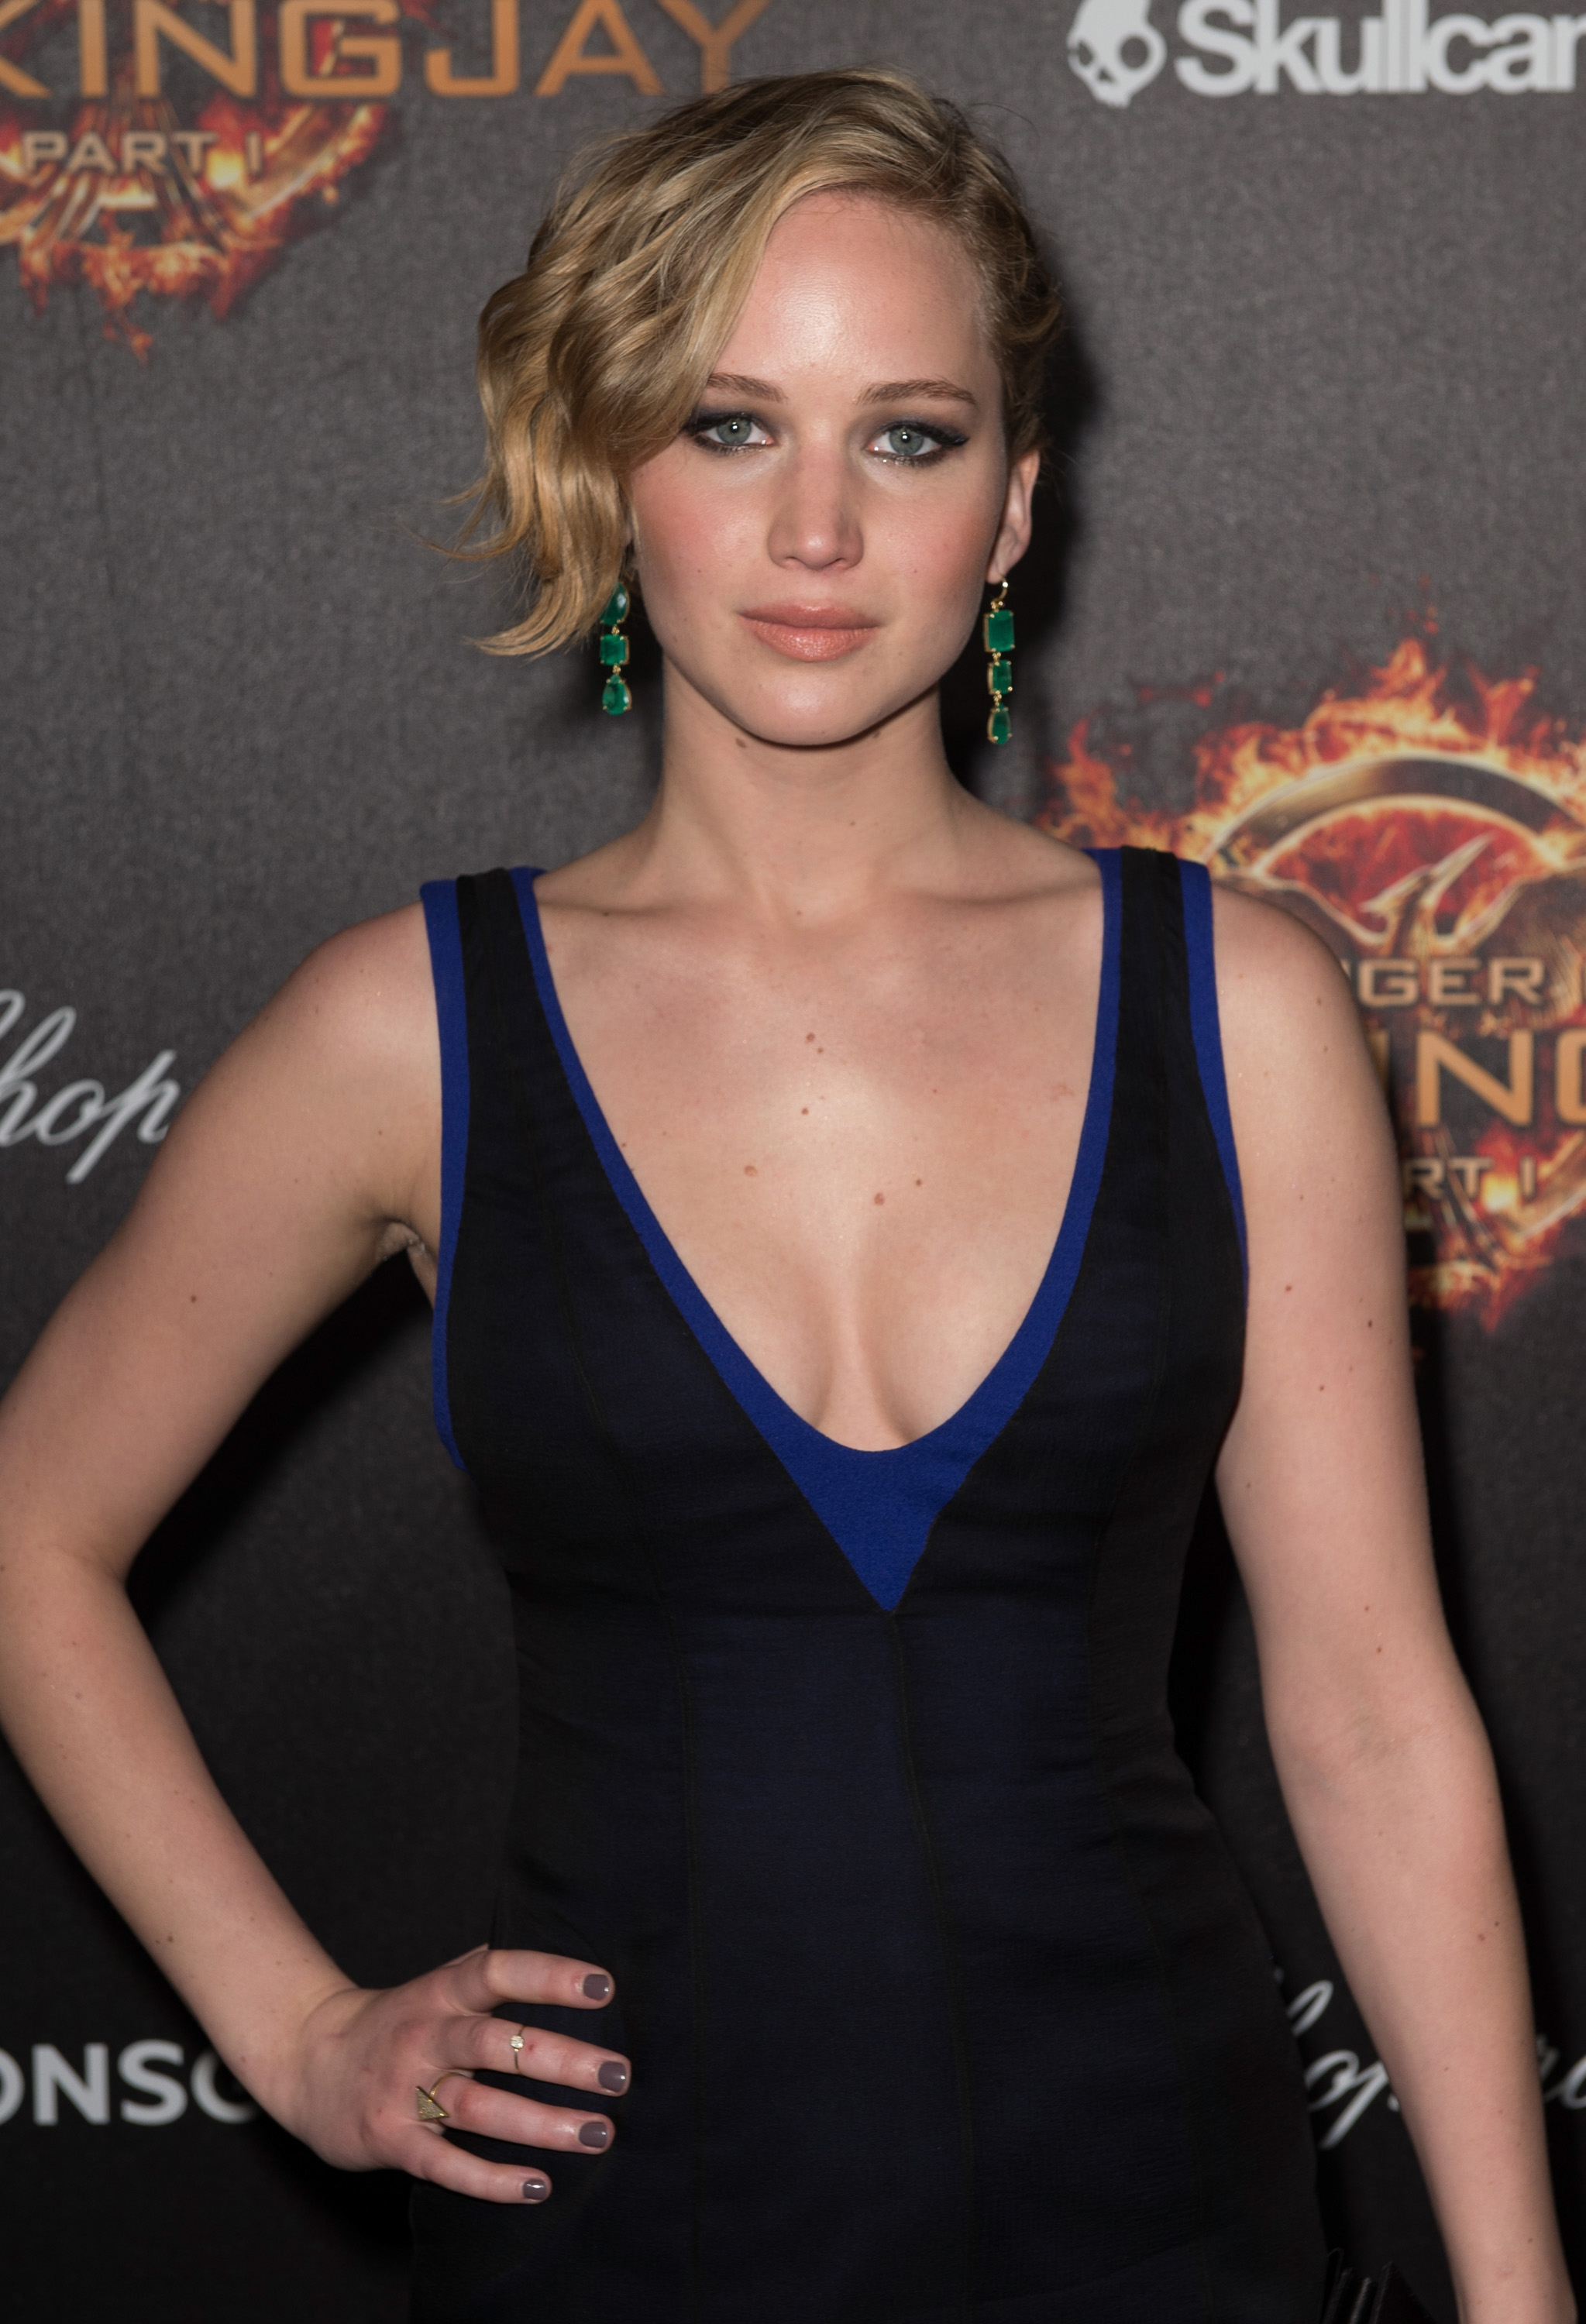 Jennifer Lawrence Nude Photo Links Removed By Google, But It's Only a Small  Victory